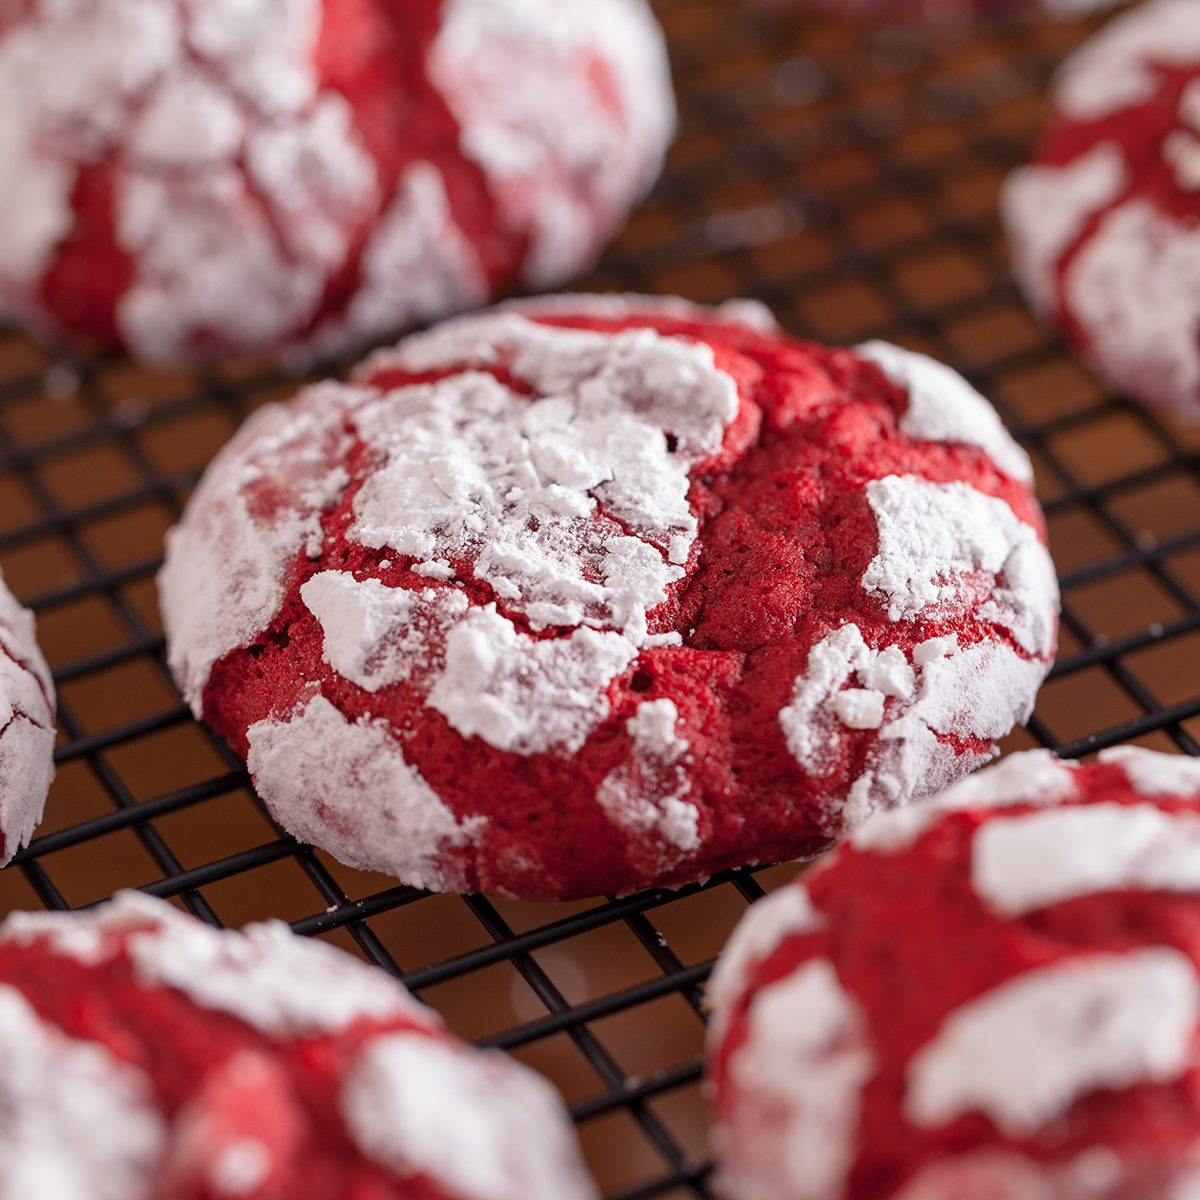 Red velvet crinkle cookies cooling on a baking rack for Christmas holiday baking